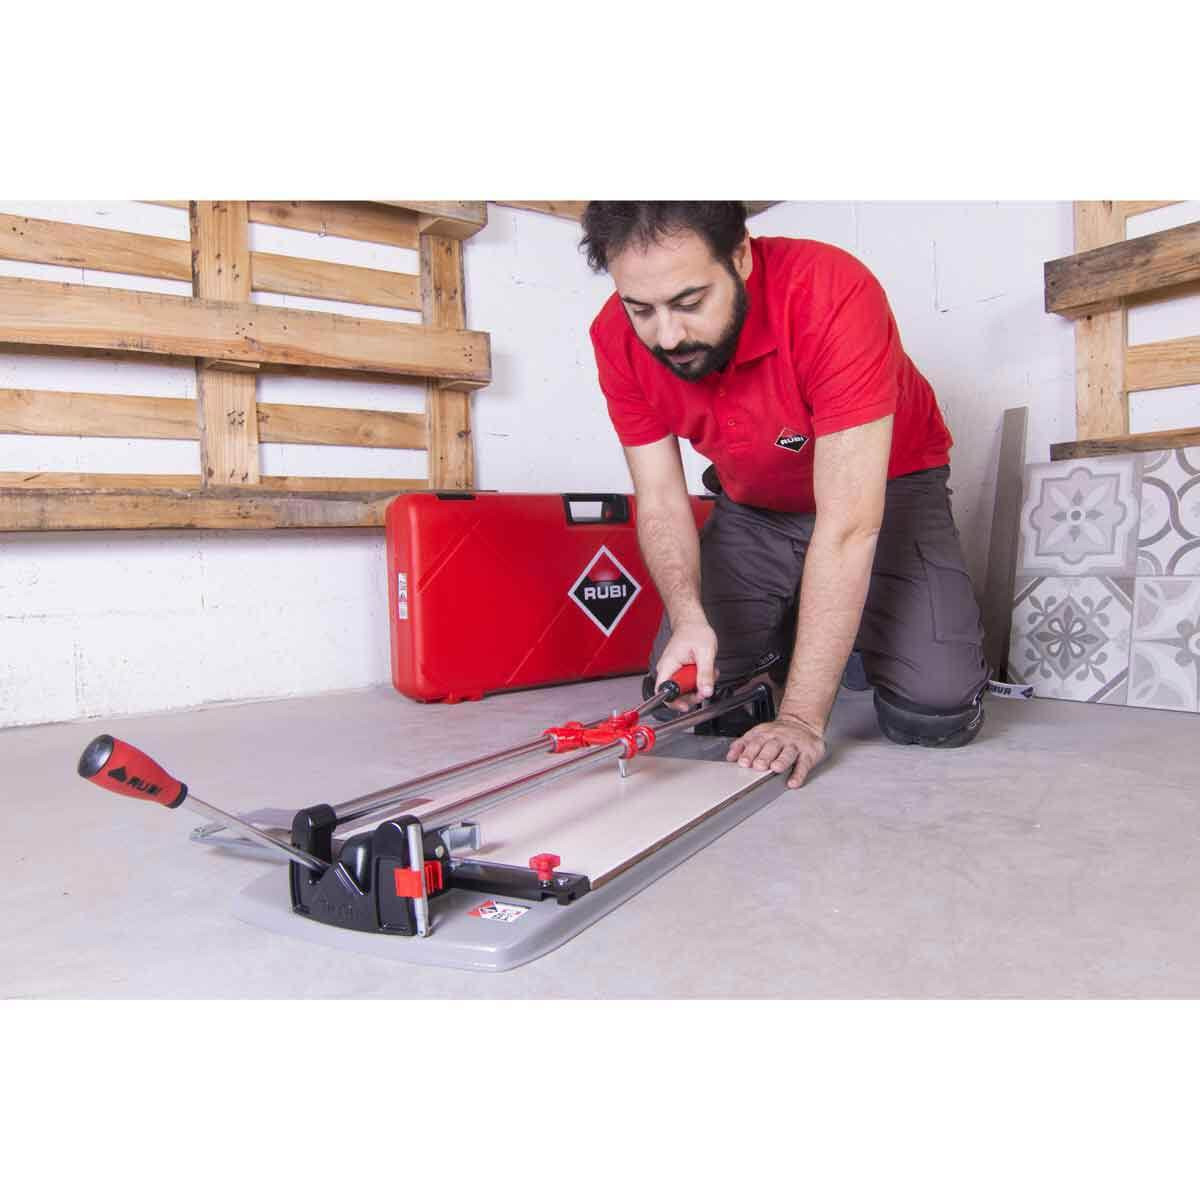 Rubi TS Max Tile Cutter action